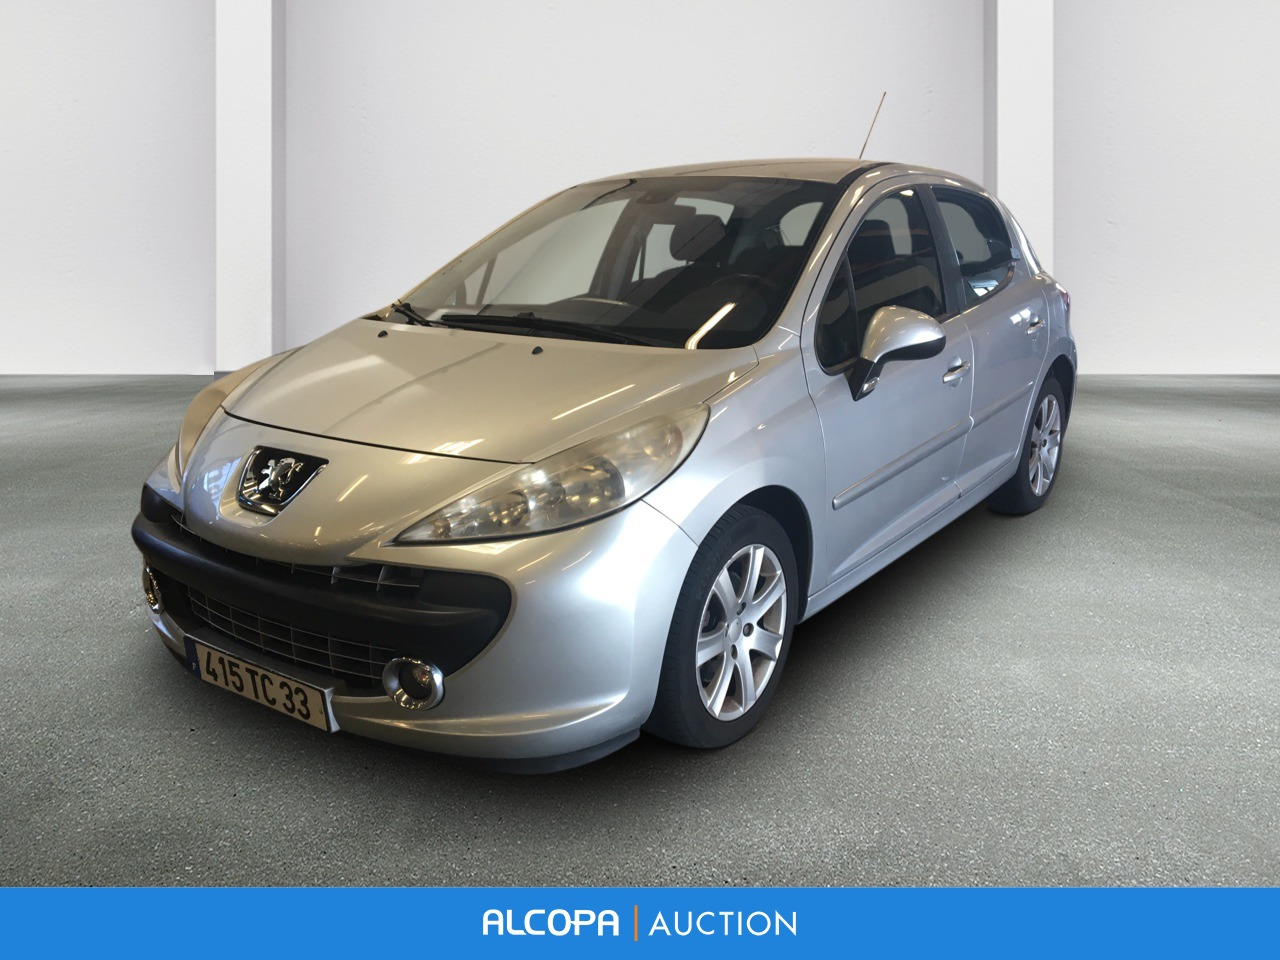 peugeot 207 207 1 6 hdi 16v 110ch sport pack rennes alcopa auction